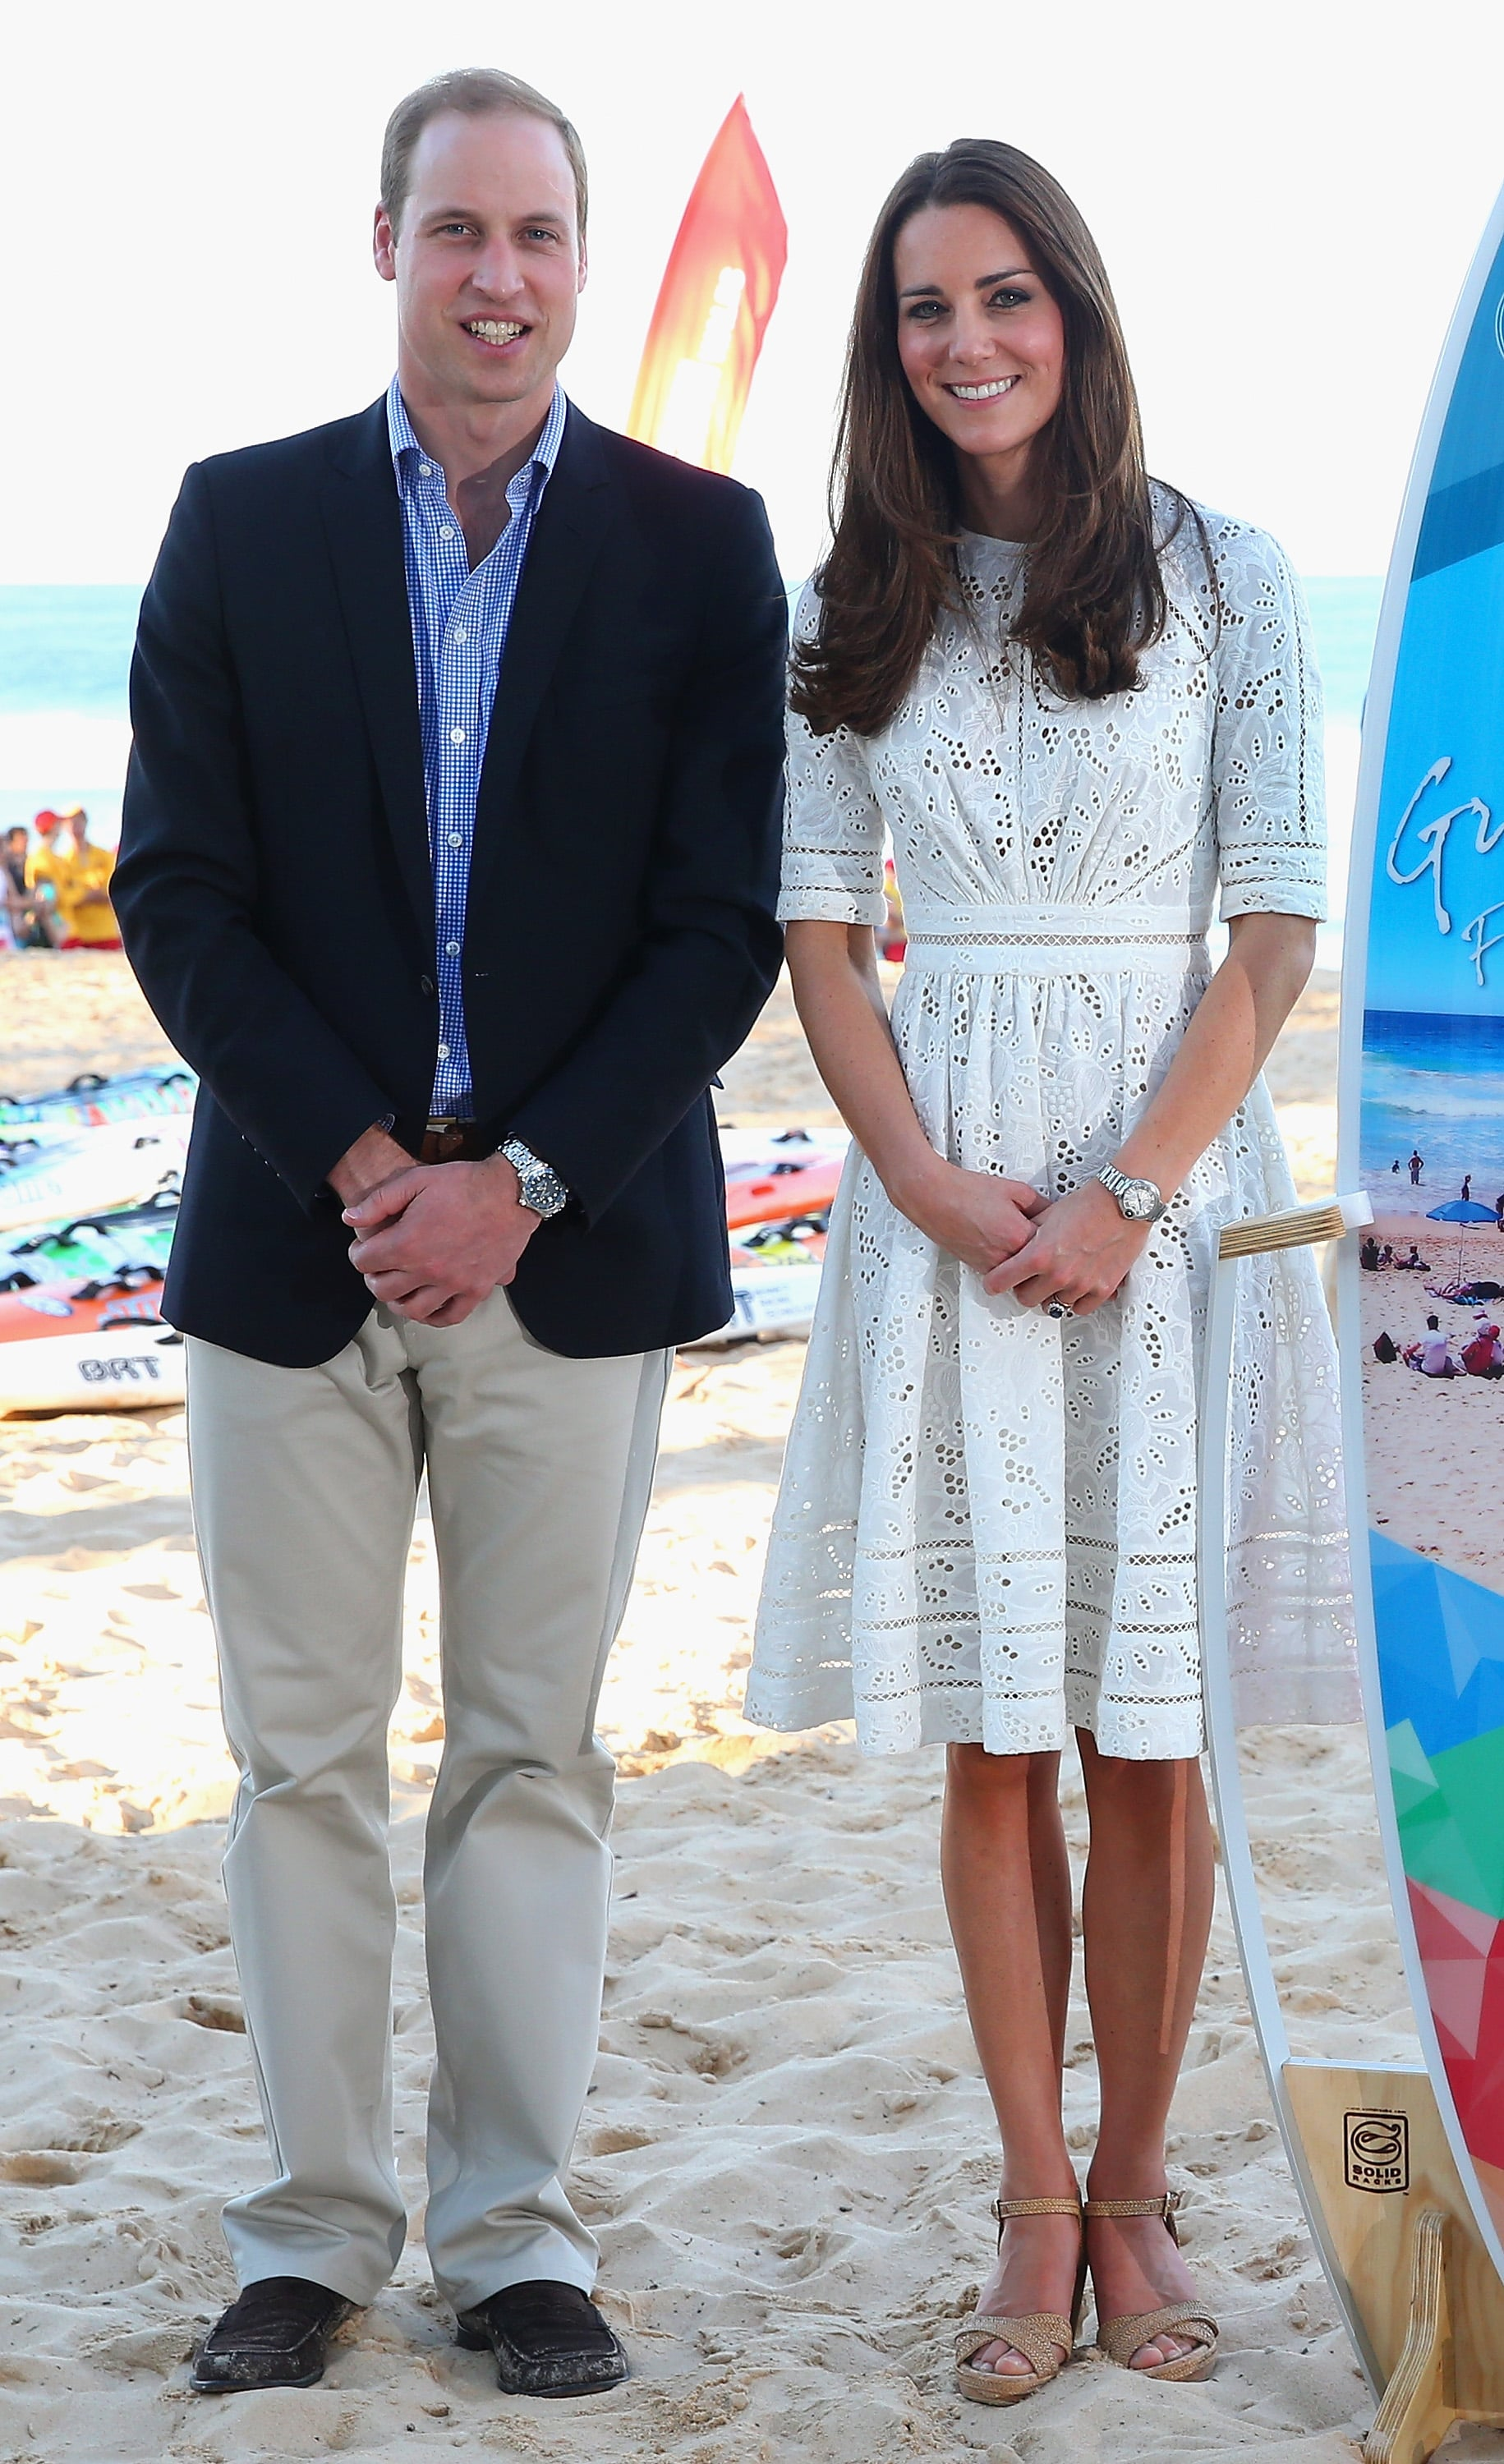 The Royal Couple at Manly Beach